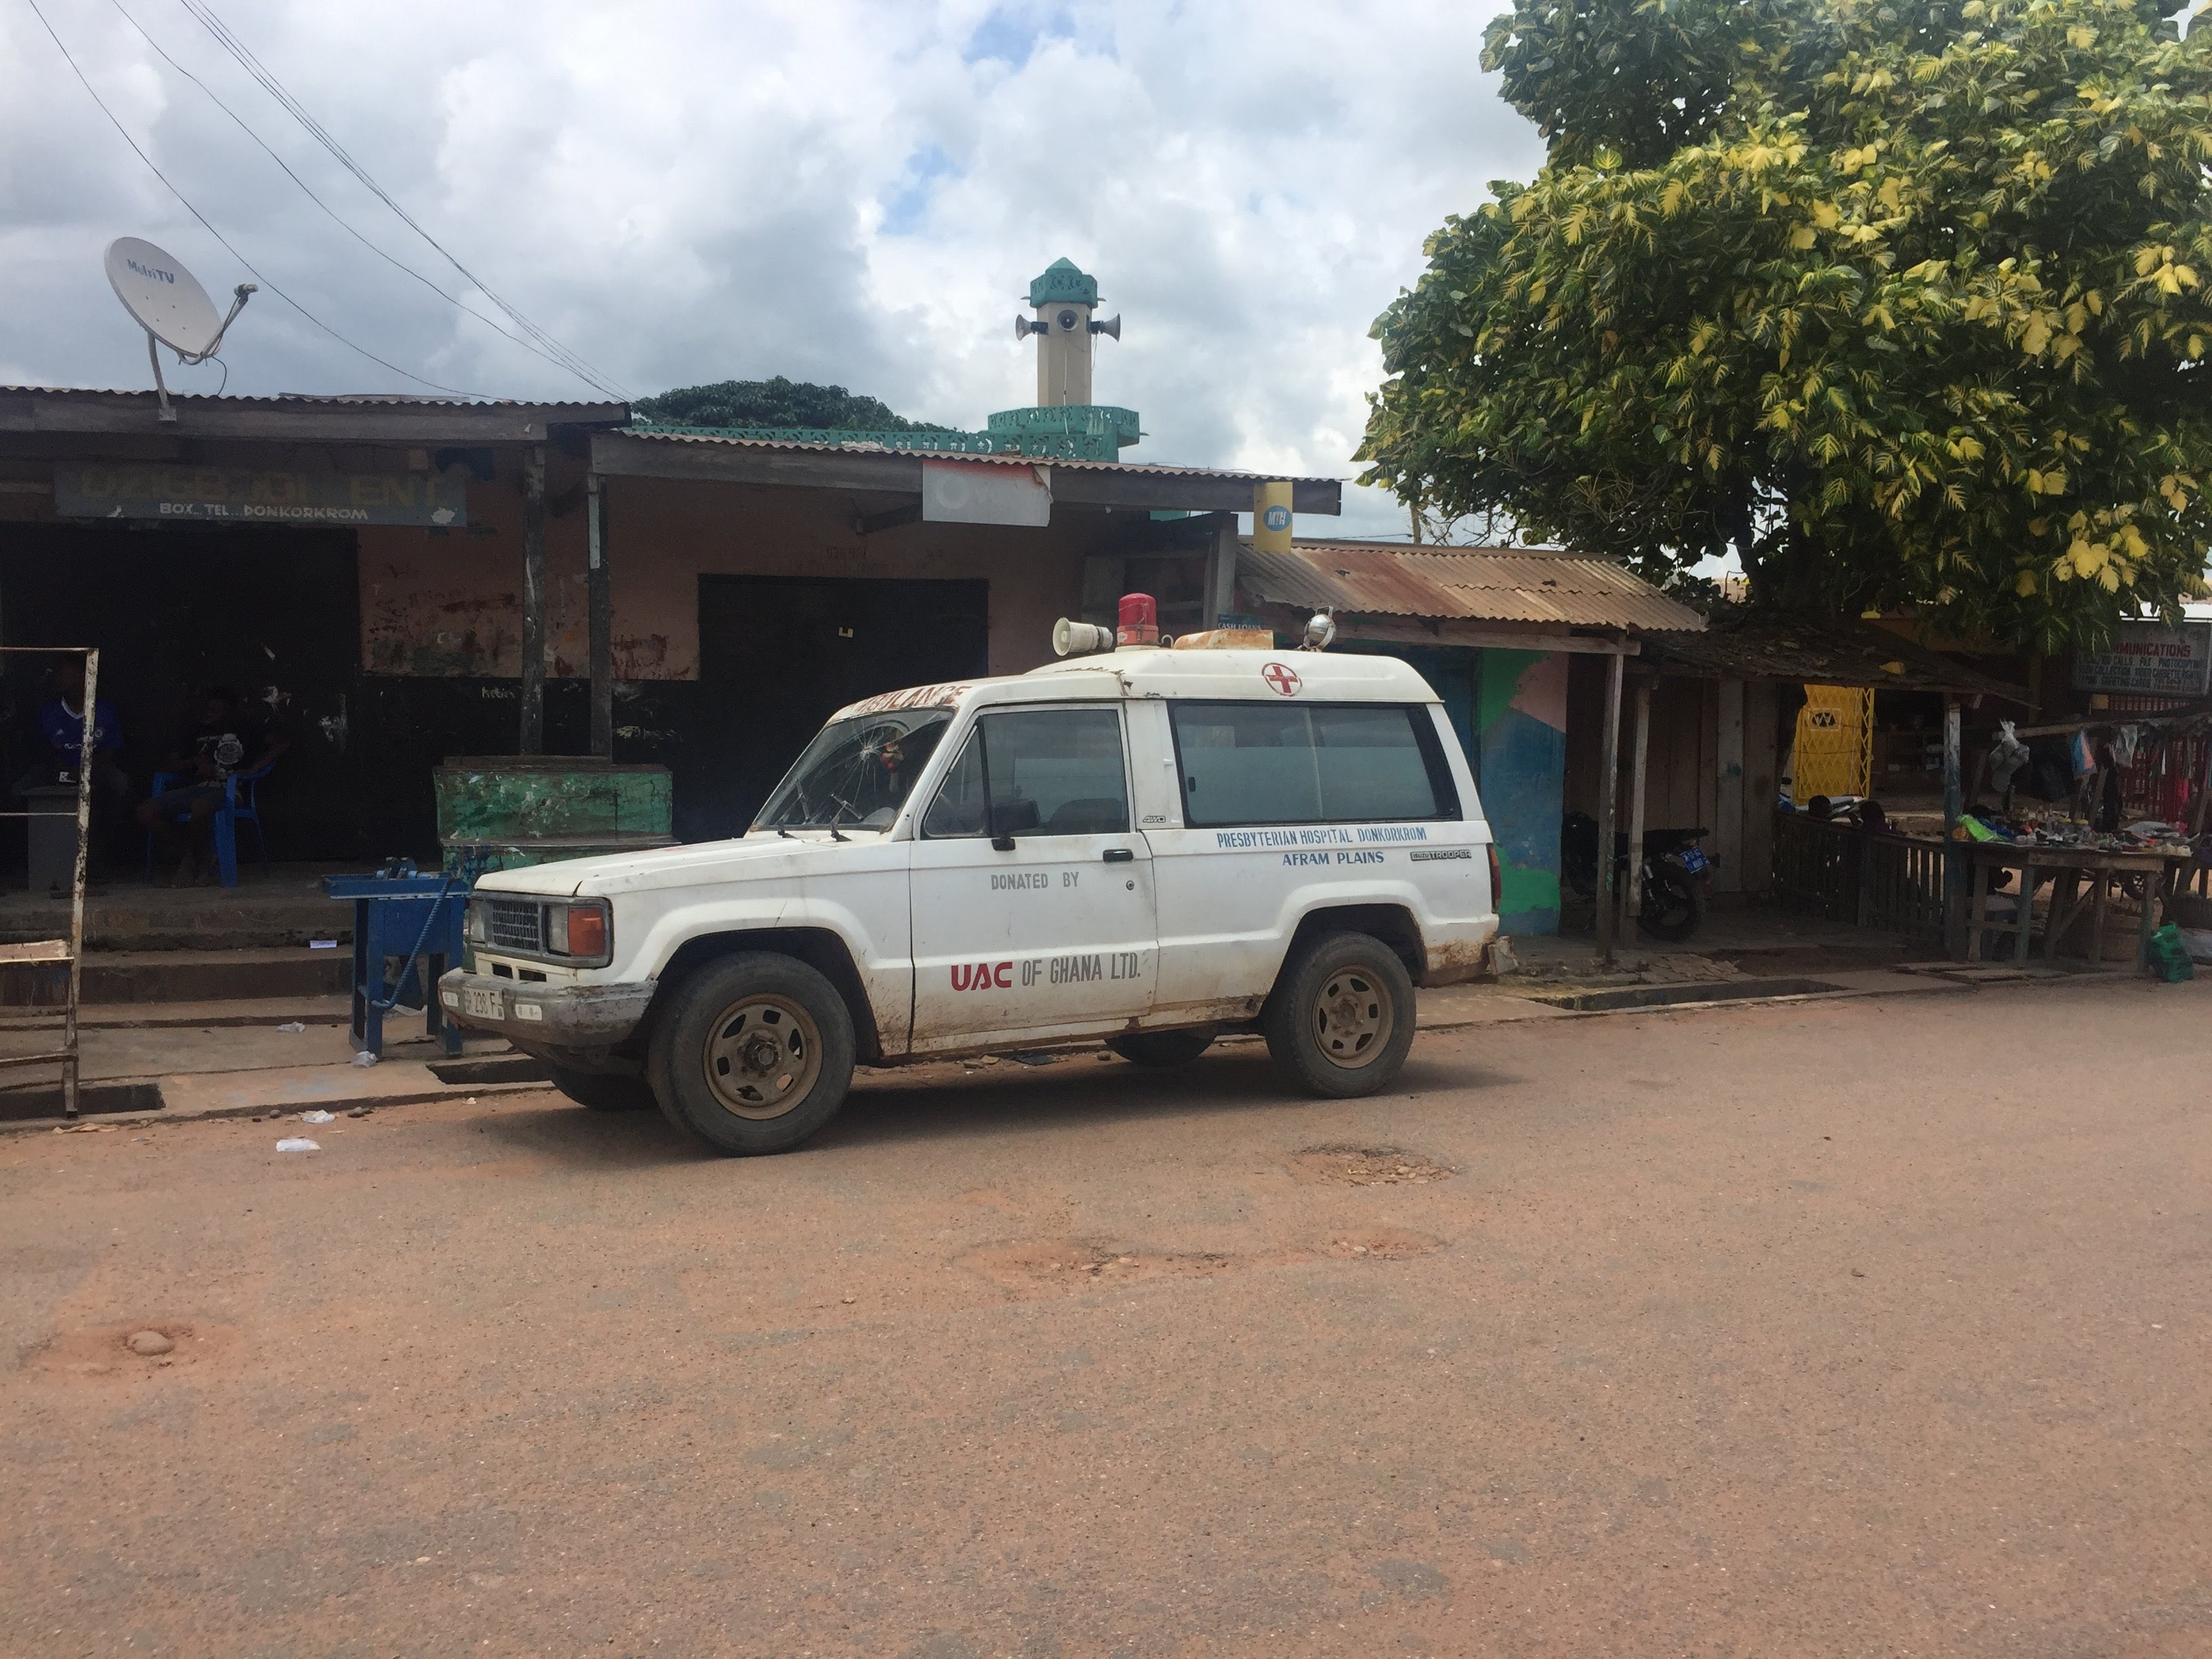 Old Ambulance In Donkorkrom